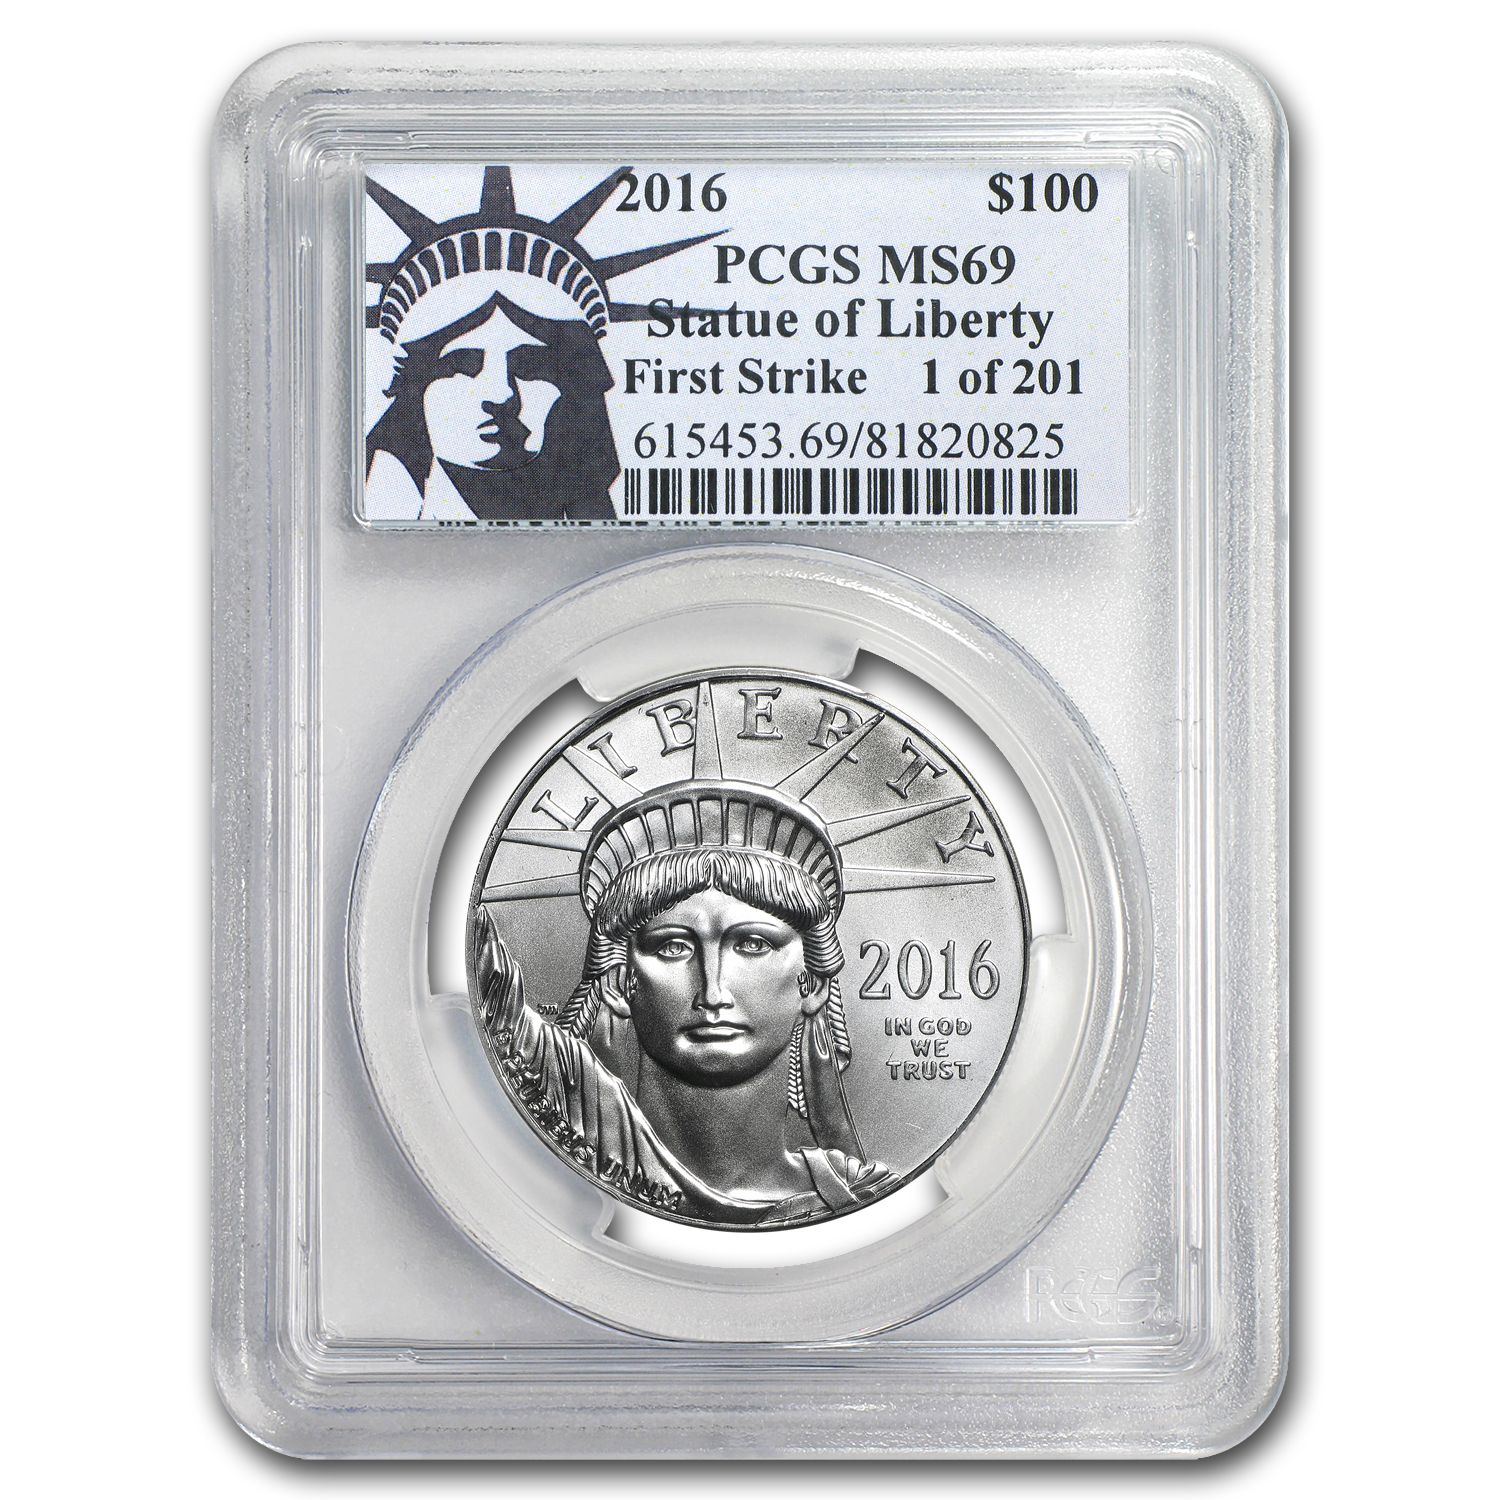 2016 1 oz Platinum American Eagle MS-69 PCGS (FS, 1 of 201)